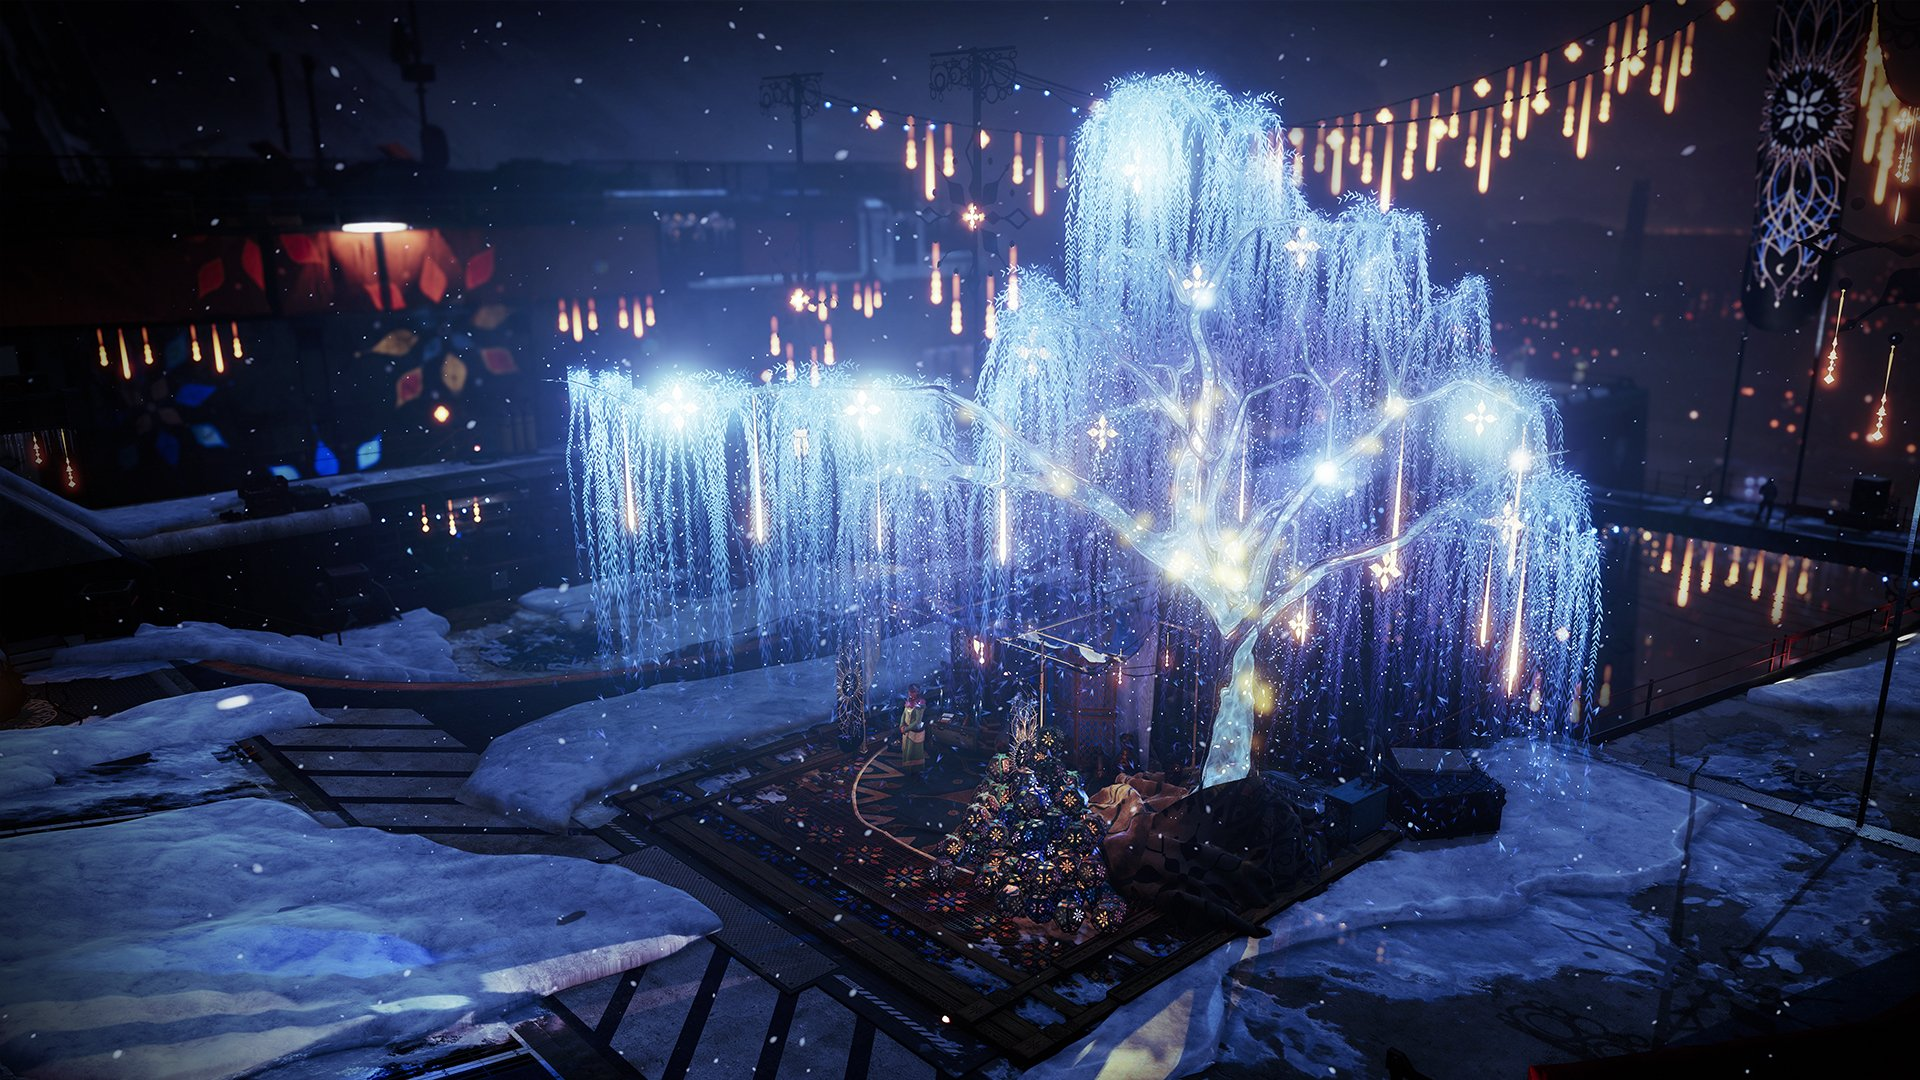 Destiny 2 is celebrating Christmas again soon with The Dawning screenshot